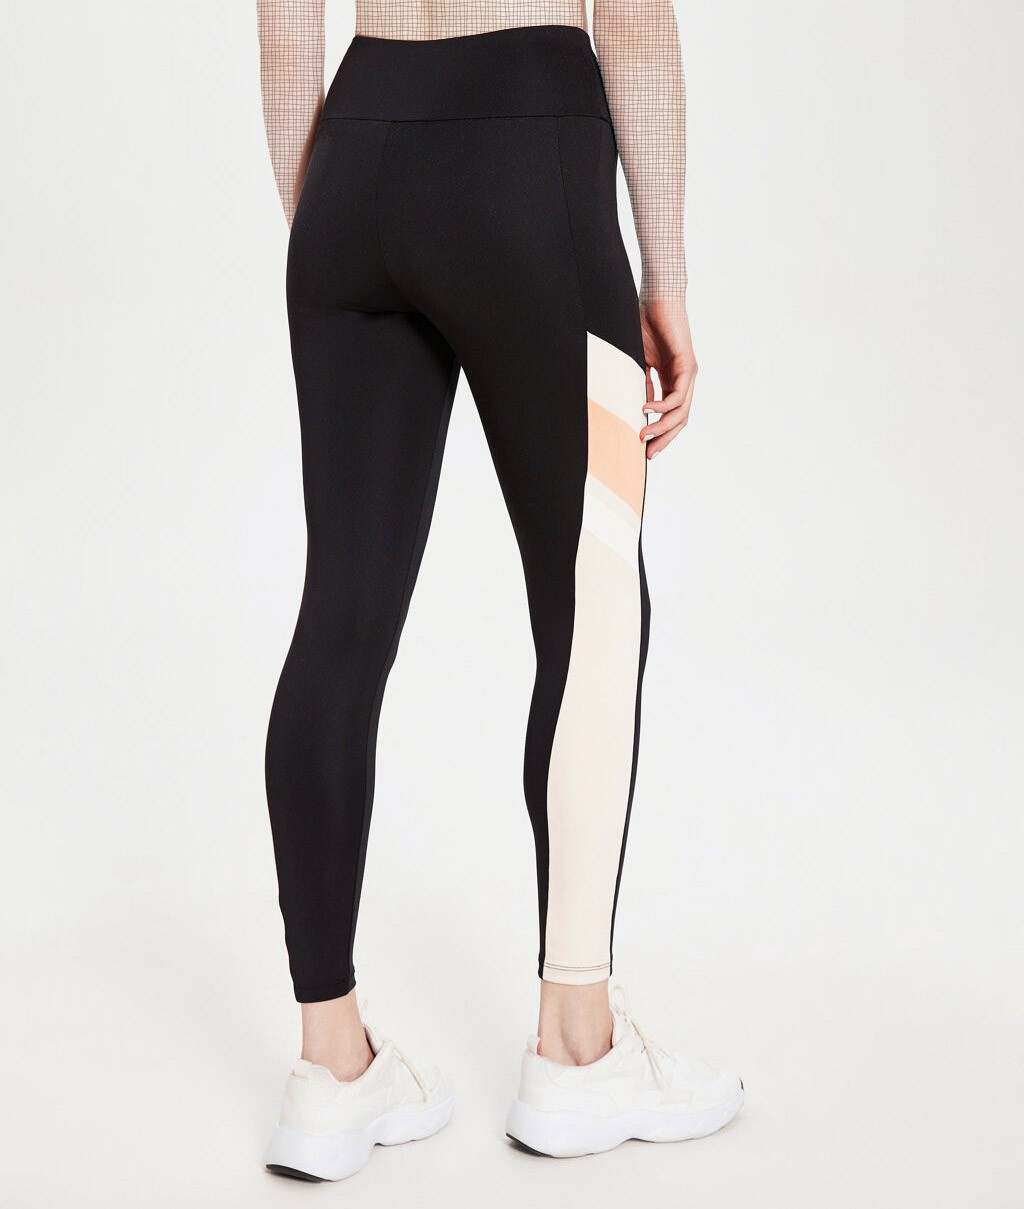 products  LC women's support and leg, black 8